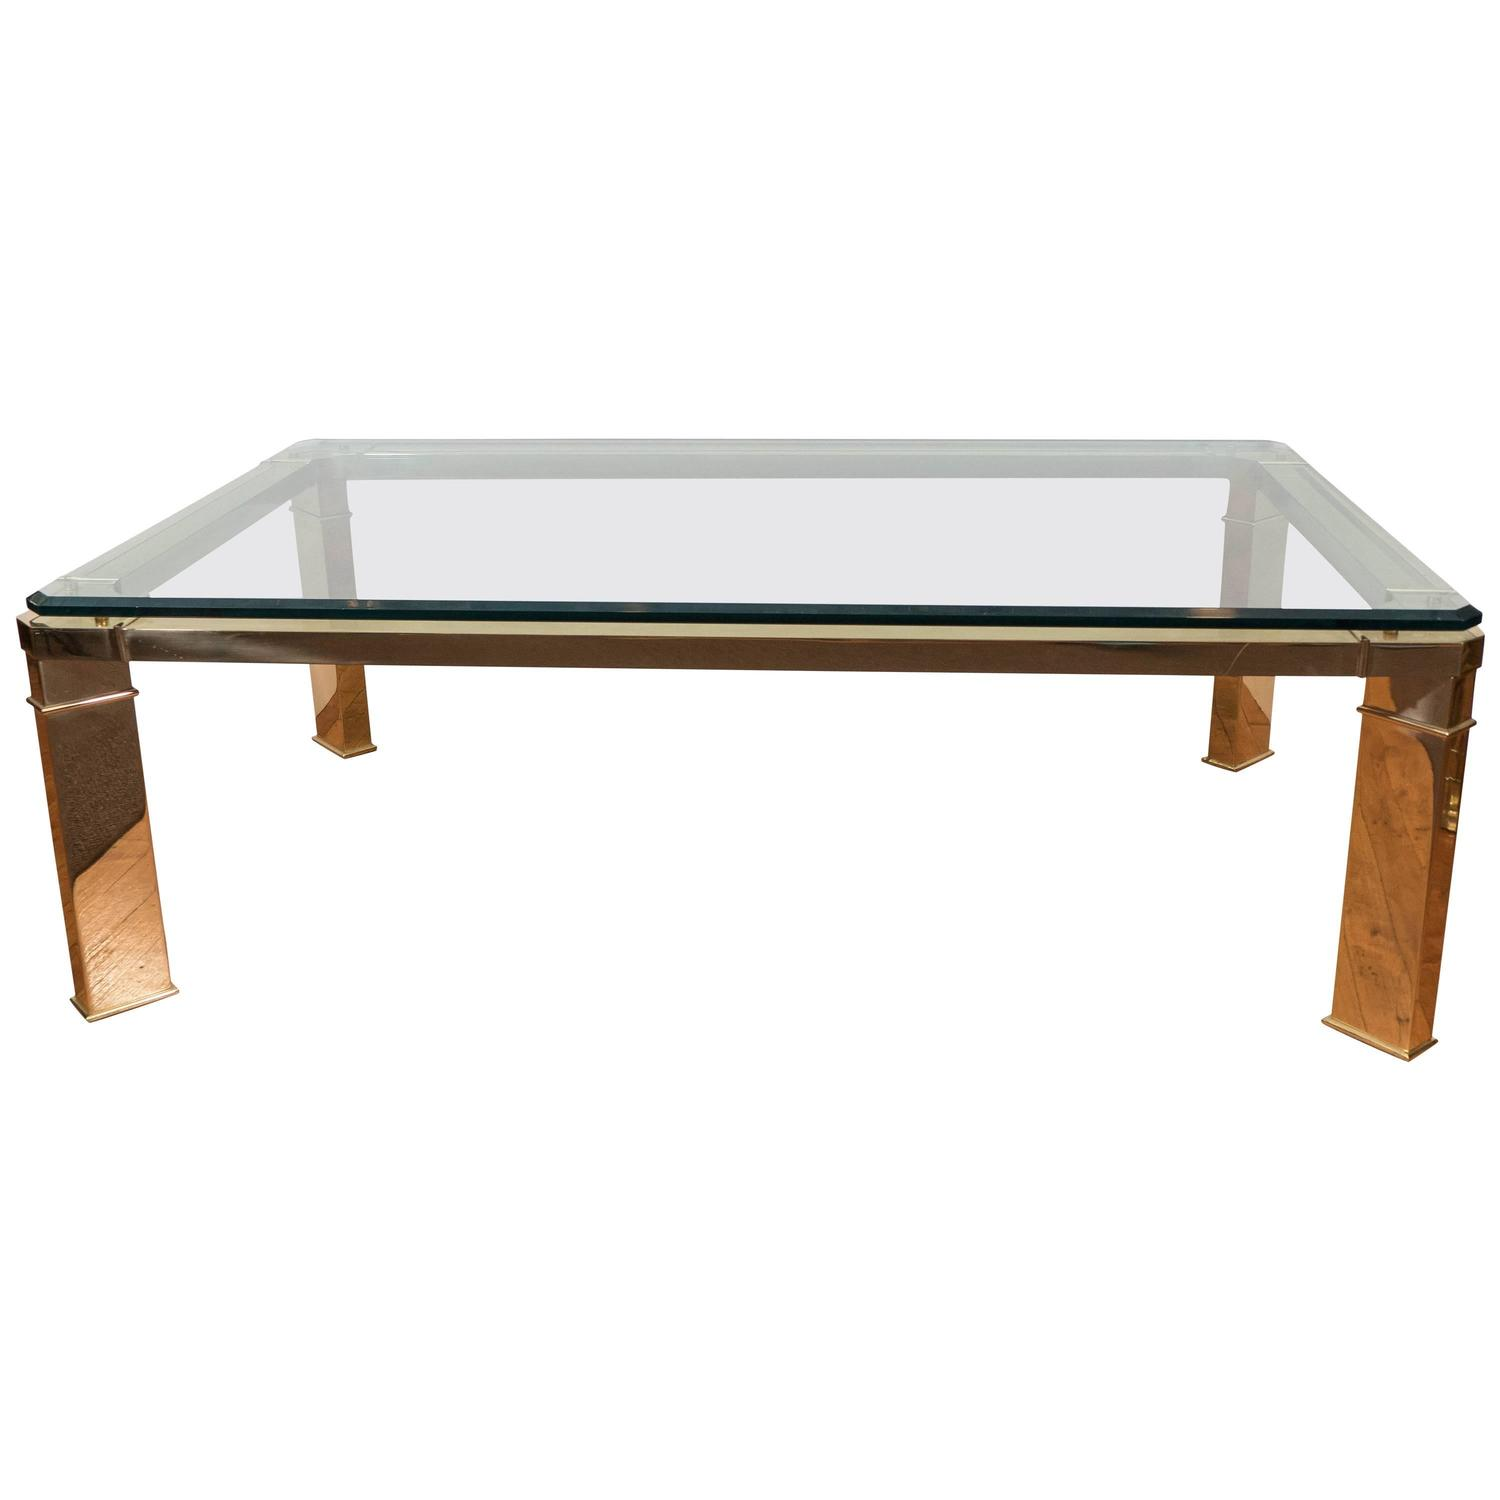 Leon Rosen Floating Glass Coffee Table with Brass Fitting for